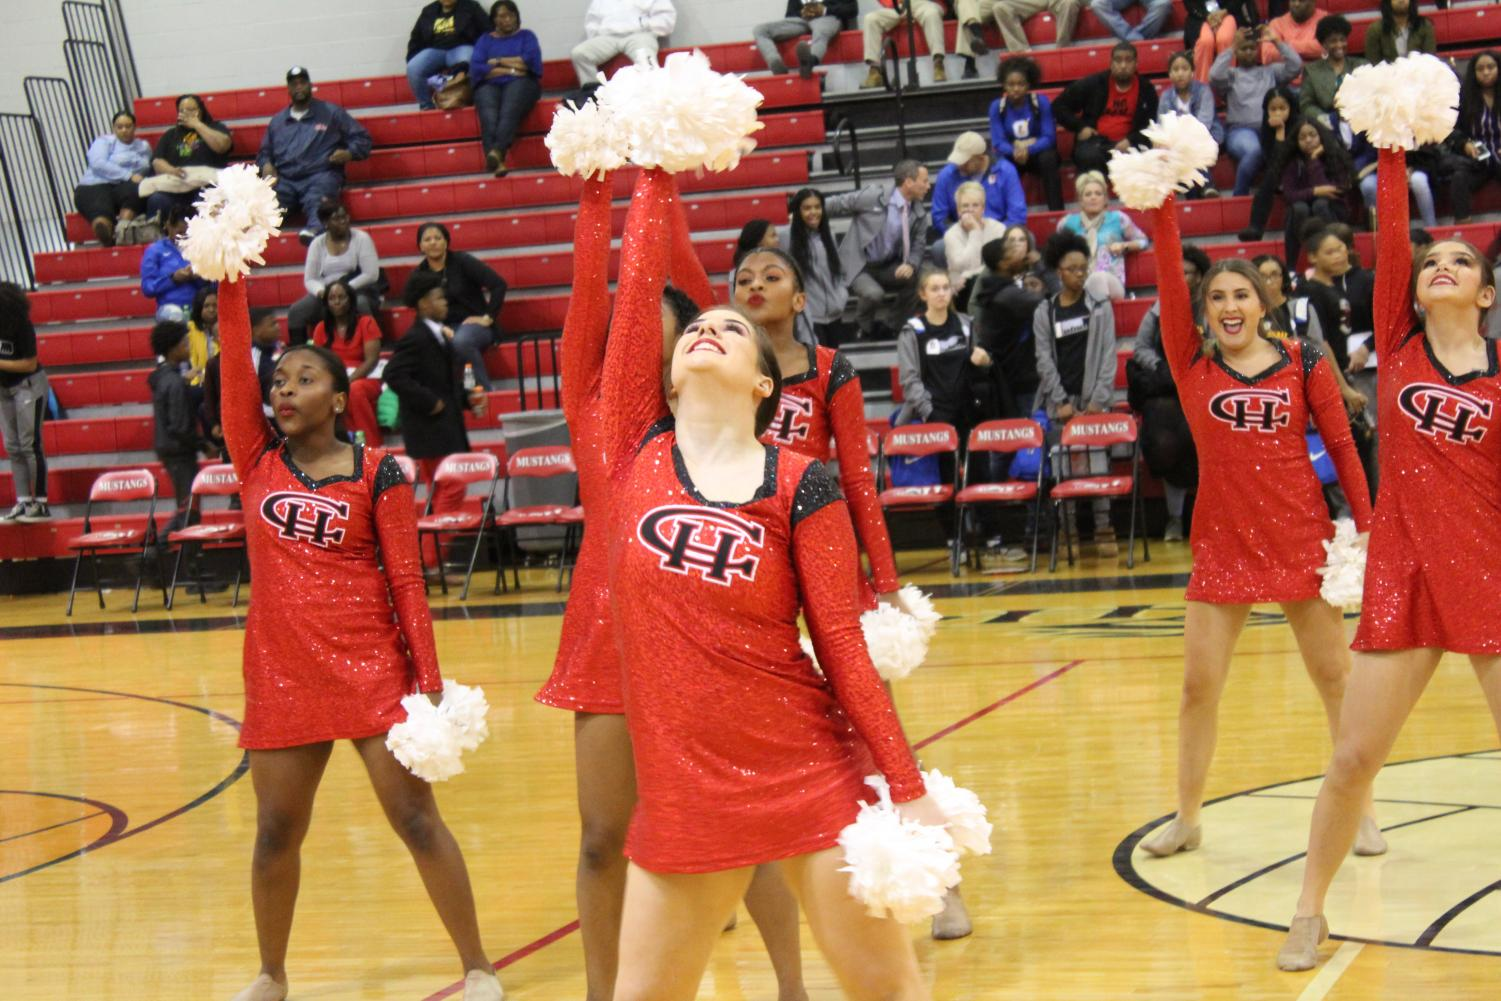 The Center Hill Dance Team, shown here performing at a home basketball game, won double state titles in hip hop and pom and is also ranked 10th in the nation in hip hop.